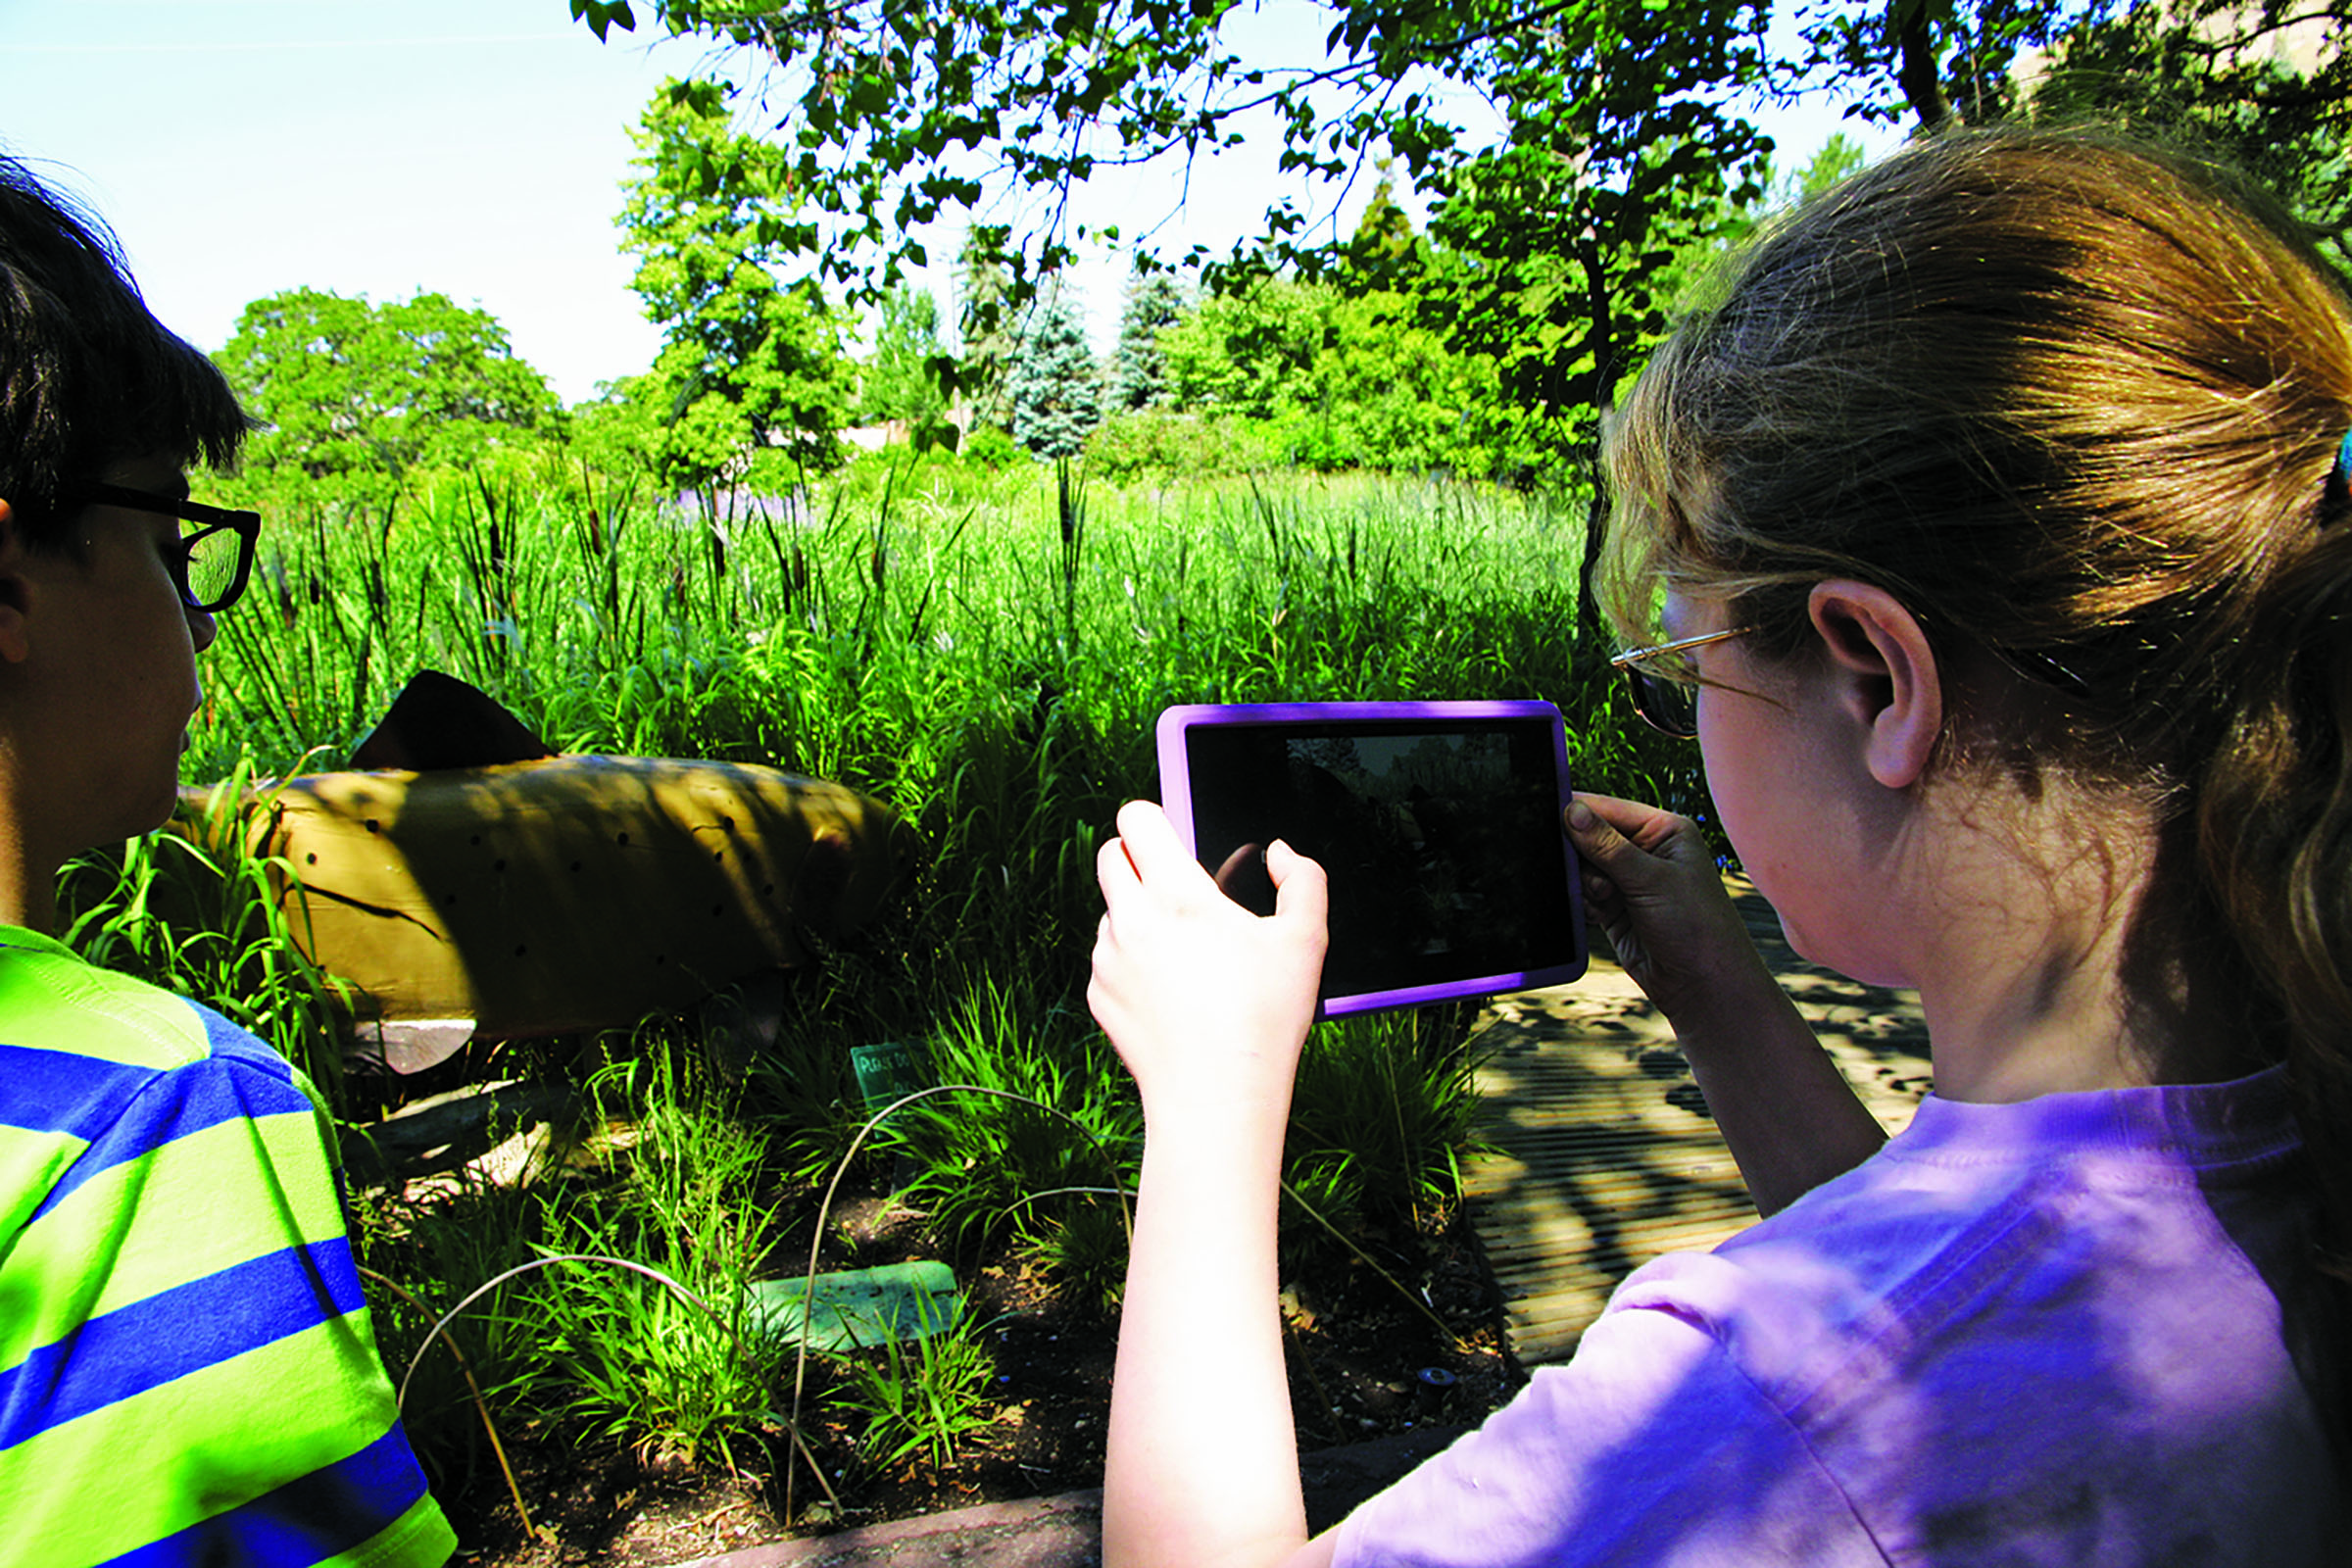 Using GPS-enabled smart phones and MIT's TaleBlazer software, the Garden has created five free-choice games that allow players to embark on science adventures